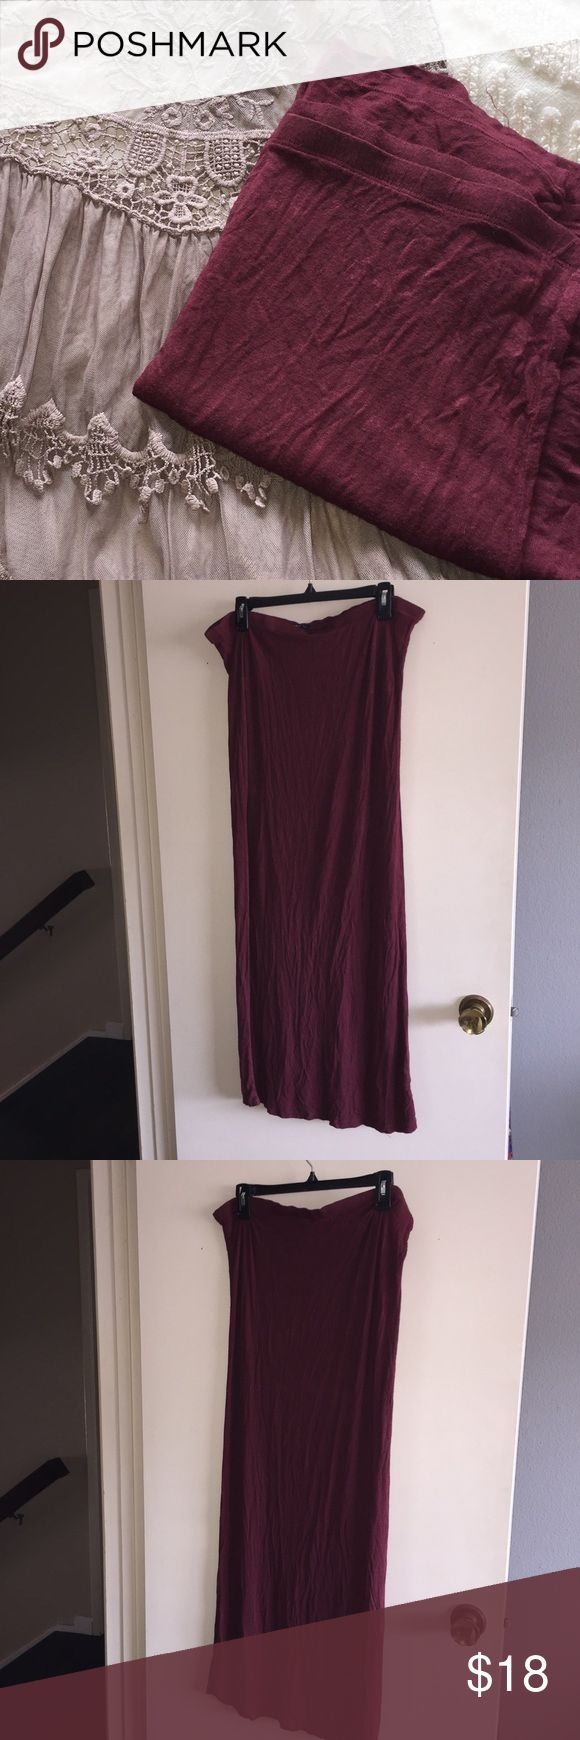 Brandy Melville Burgundy Maxi Skirt super soft and flowy lightweight burgundy maxi skirt from Brandy Melville, says one size fits all but the waist measures at 19 inches flat across so i'm listing it as a large! this skirt is sure to pair great with a pretty tank top or over a swimsuit!  ✨just trying to clean out my closet, make a reasonable offer!✨ Brandy Melville Skirts Maxi